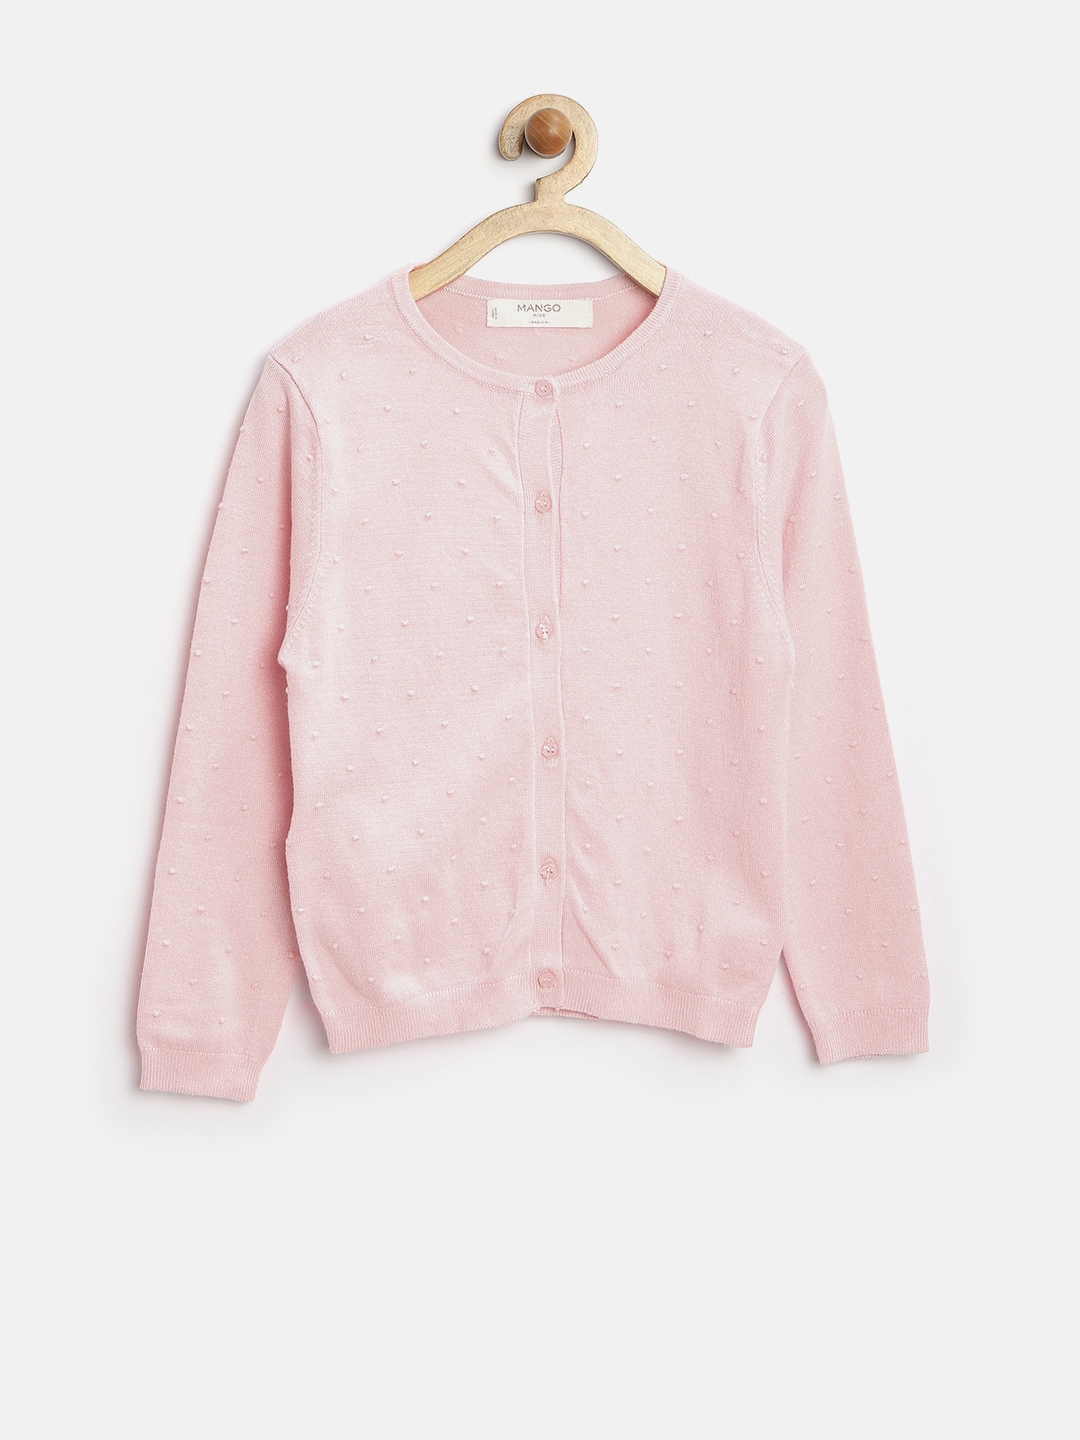 Buy Mango Kids Girls Peach Coloured Sweater - Sweaters for Girls ...